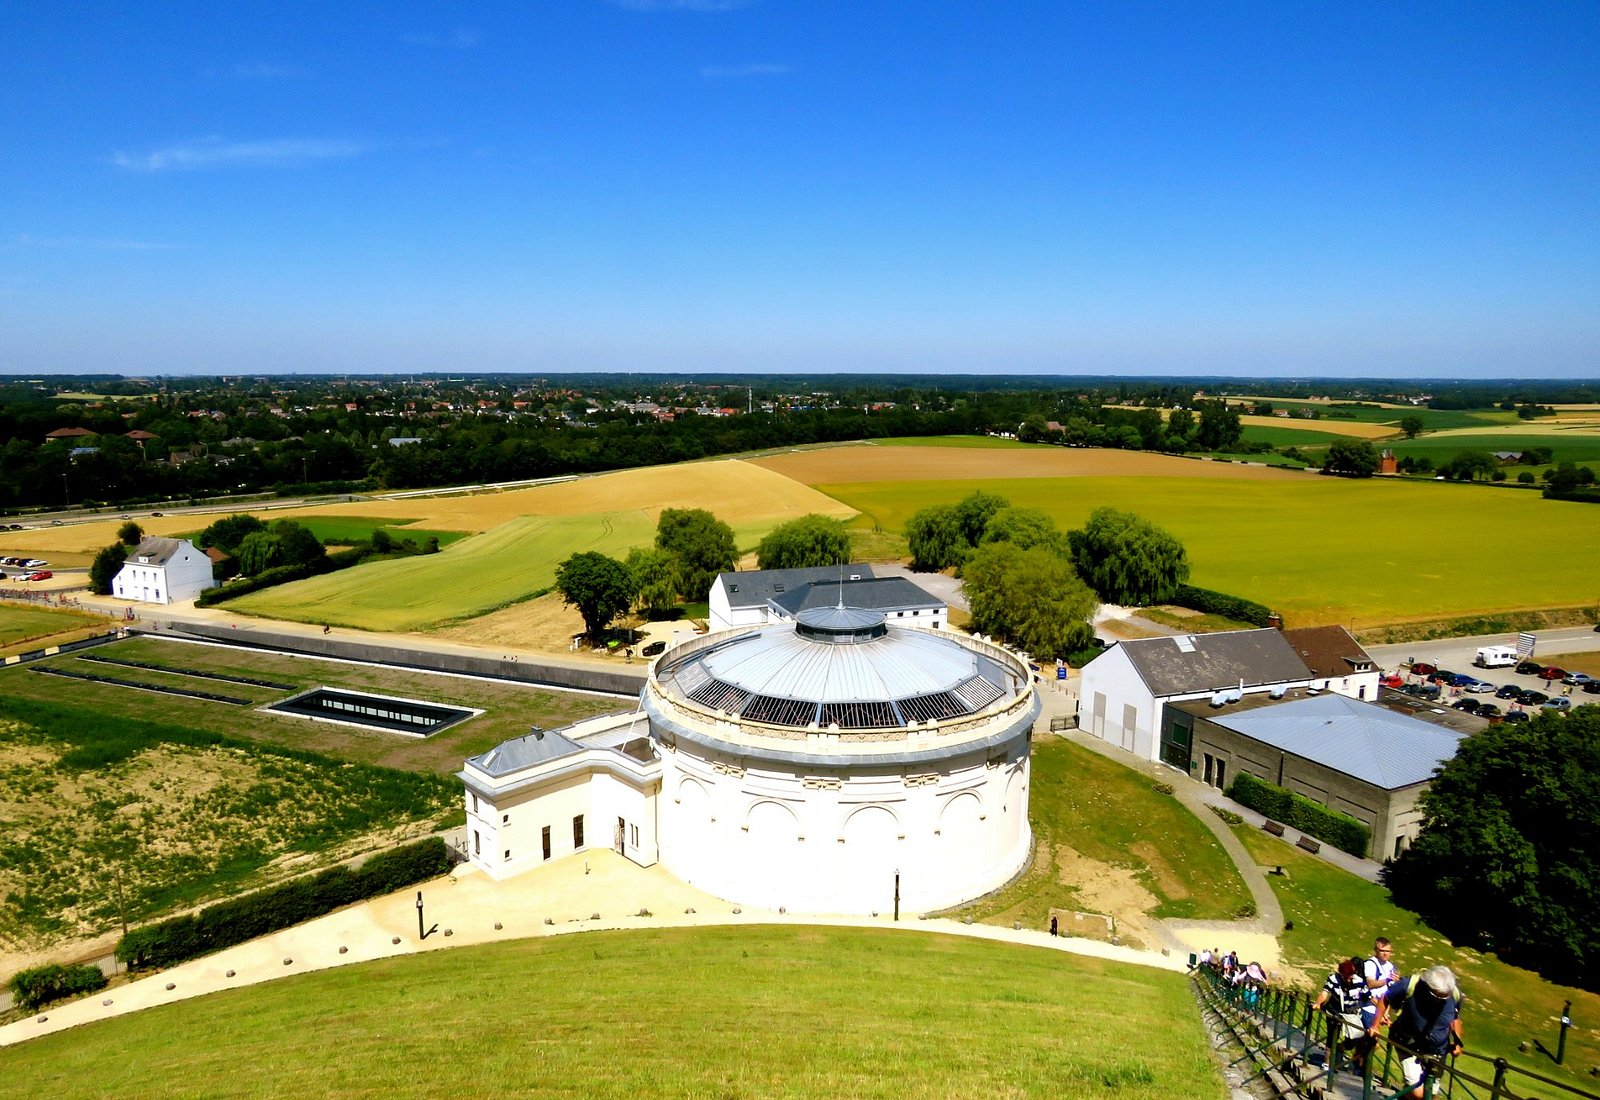 View from the hill overviewing the battle fields and the old panorama building.